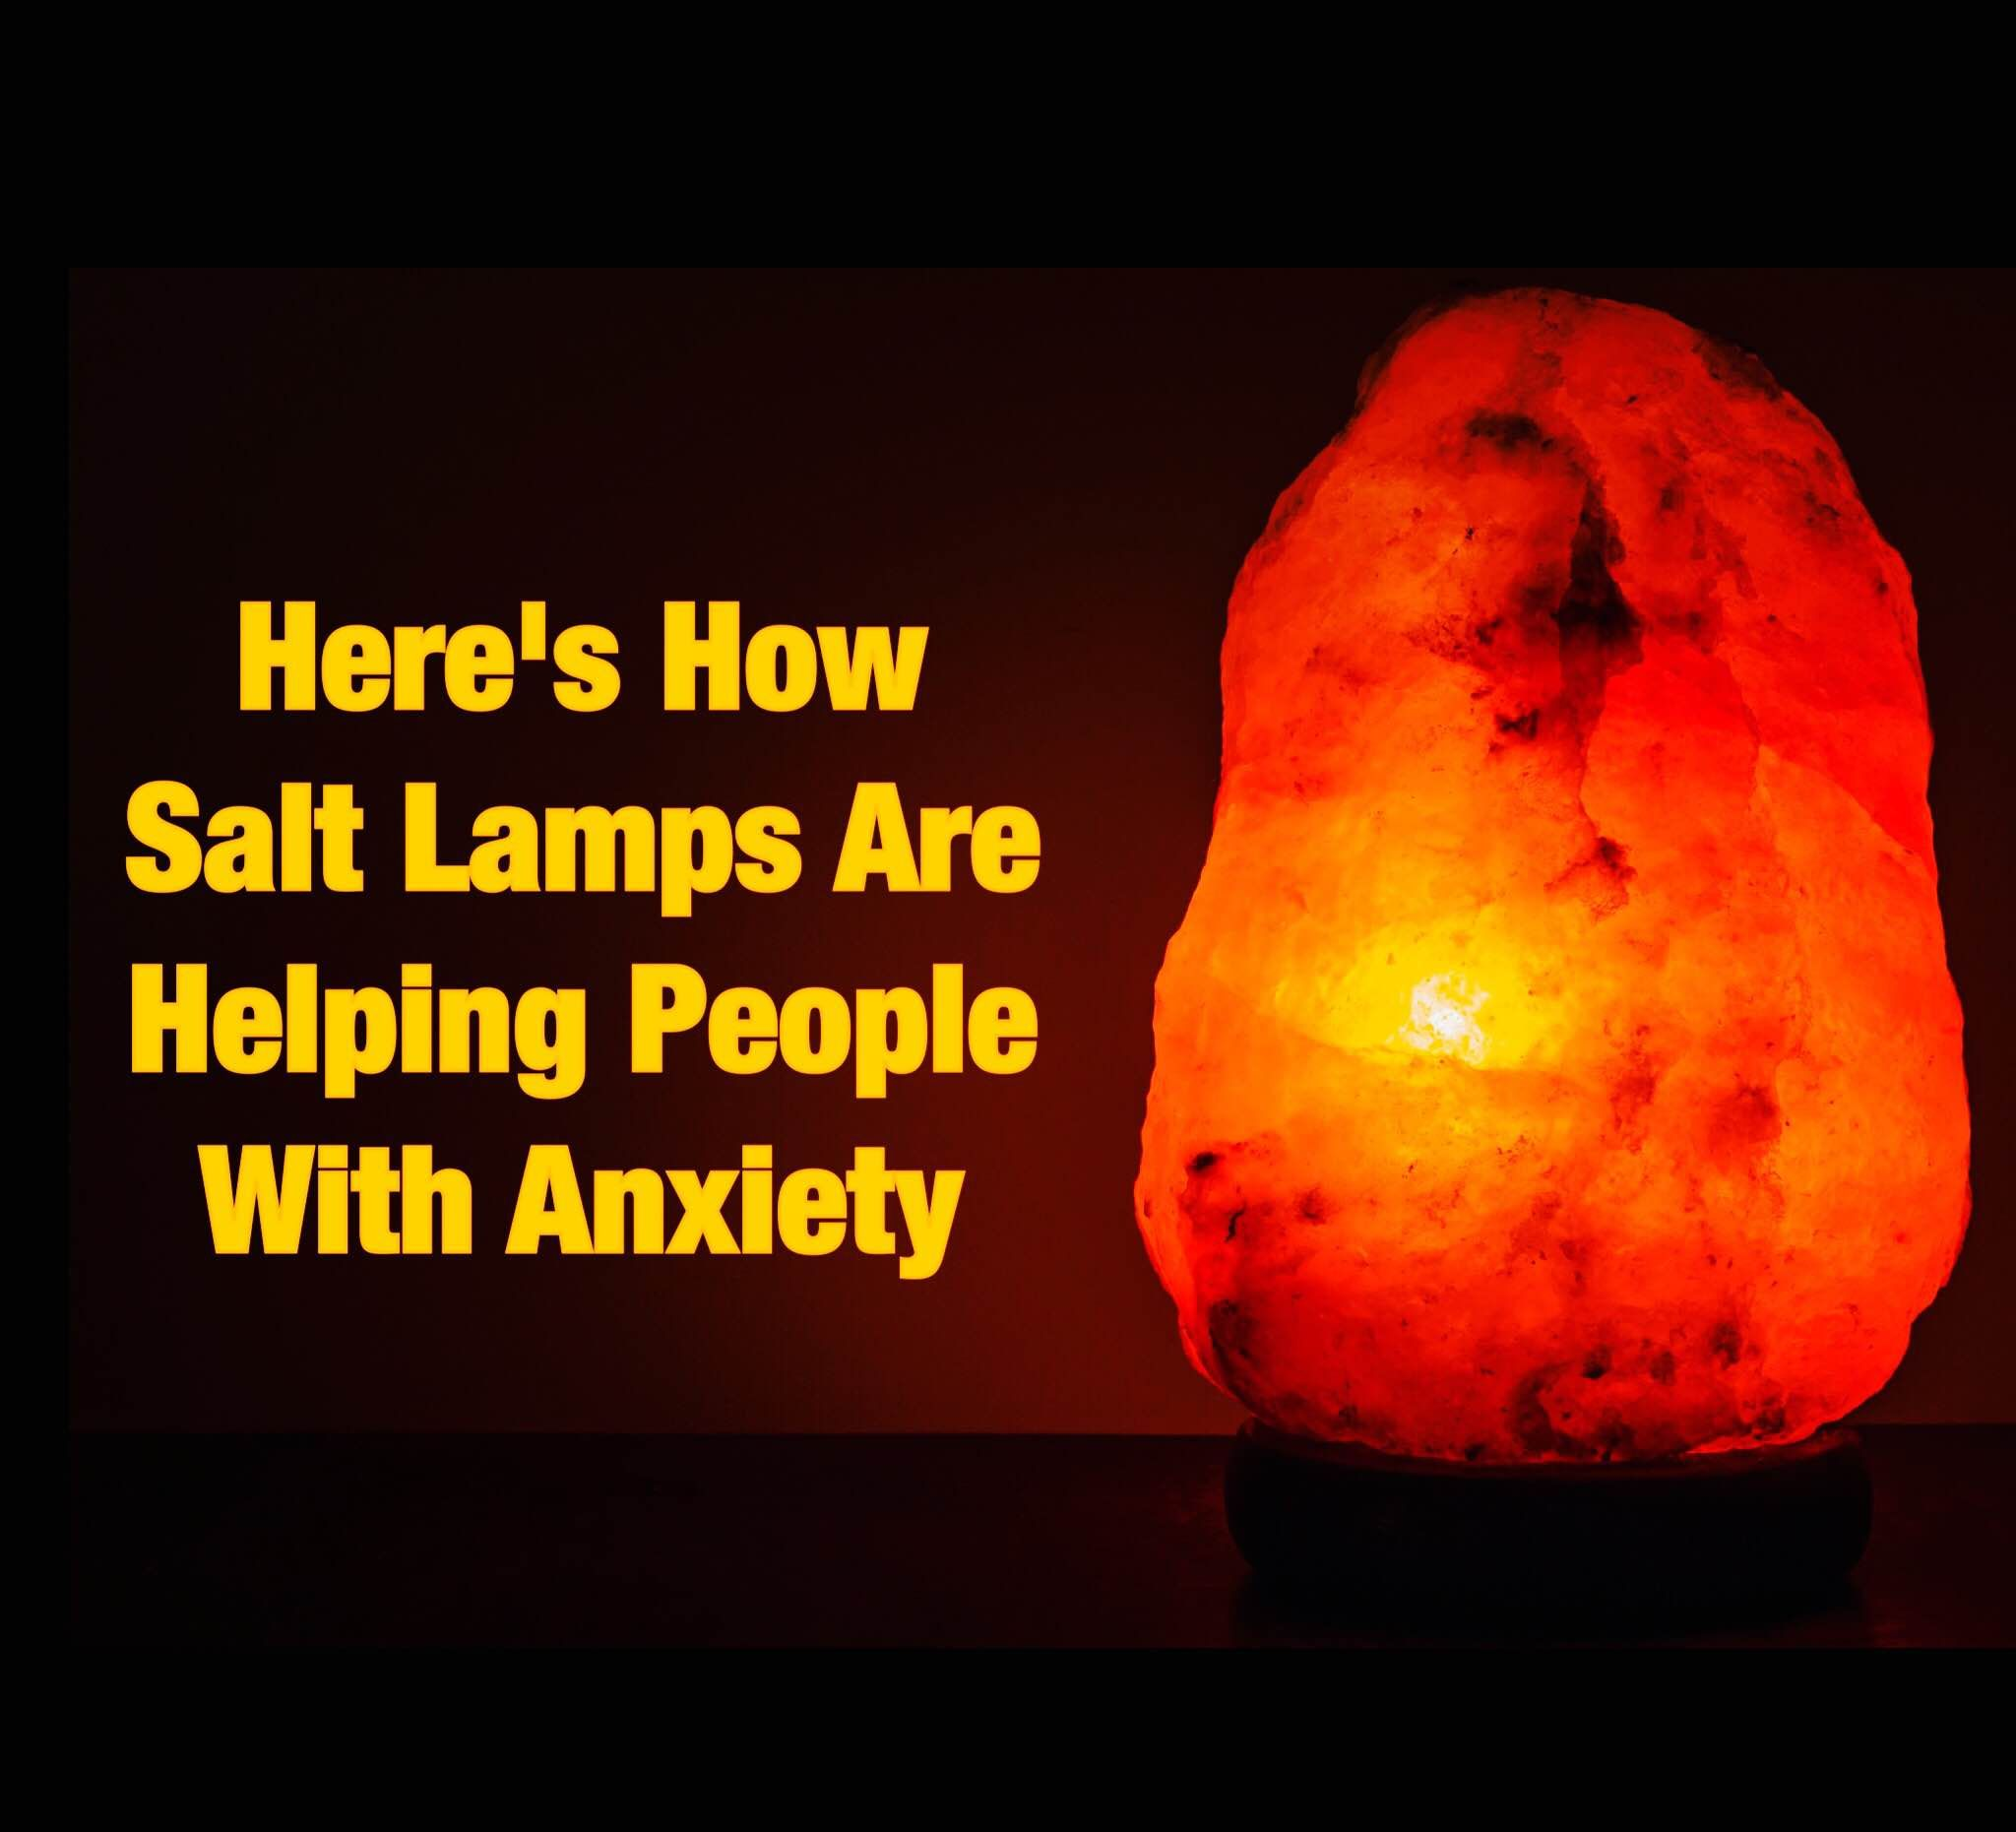 Salt Lamp Anxiety Stunning Here's How Salt Lamps Are Helping People With Anxiety  Cure Inspiration